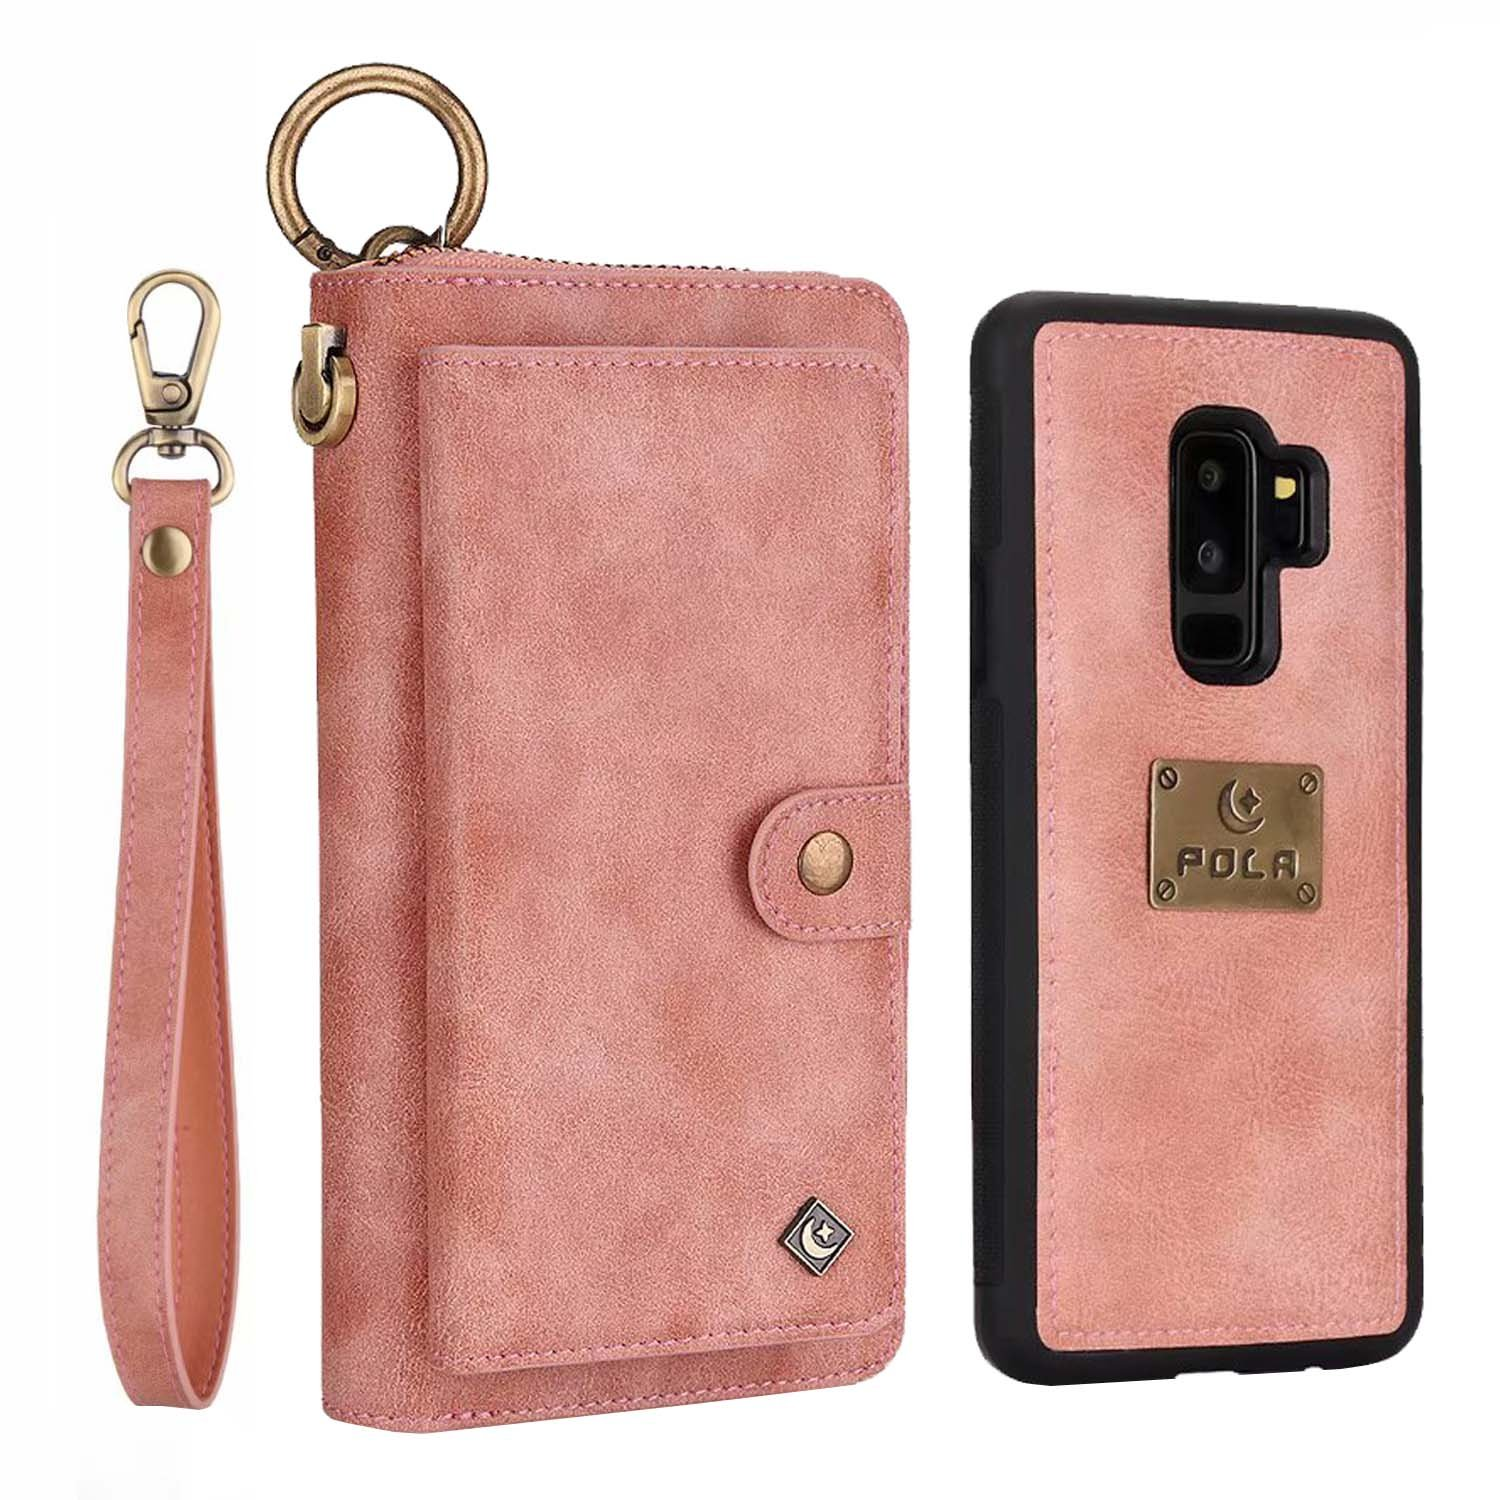 Galaxy S9 Plus Wallet Phone Case,GX-LV Samsung Galaxy S9 Plus Wallet Case Leather Case Cover Zipper Pouch with 14 Card Holder,Magnetic Detachable Case For Samsung Galaxy S9 Plus (Pink)